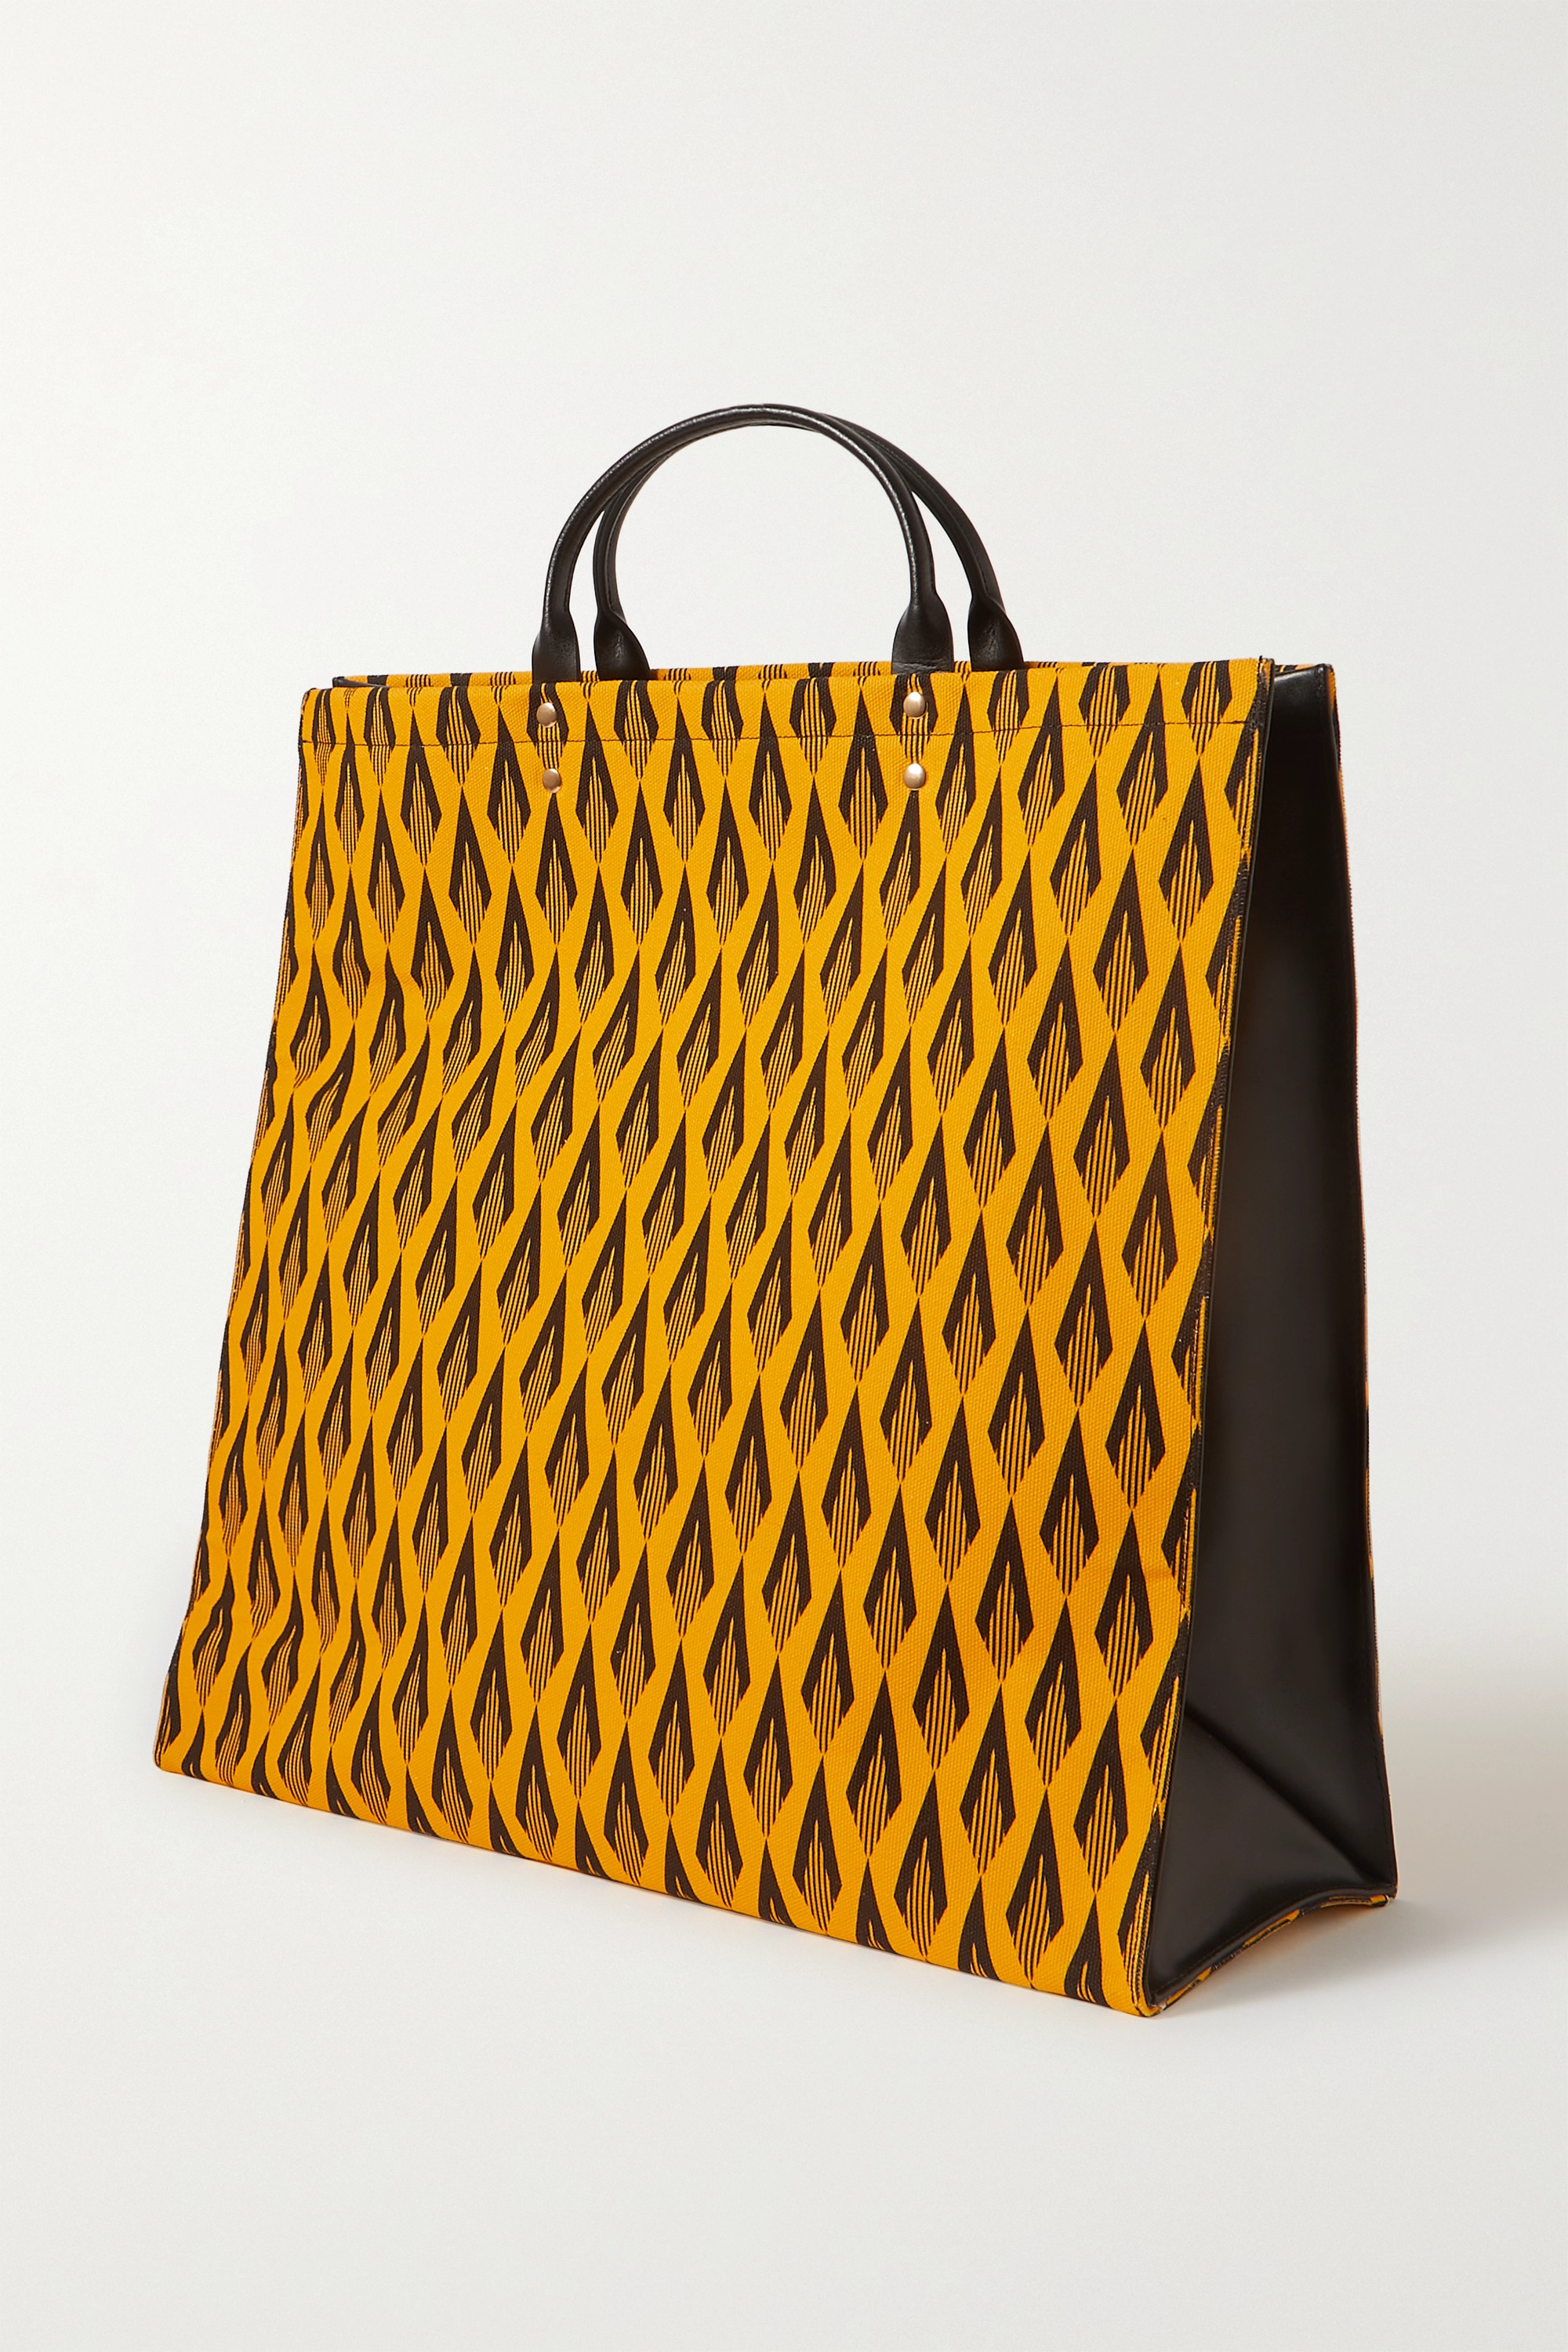 Paco Rabanne Printed cotton-canvas and leather tote